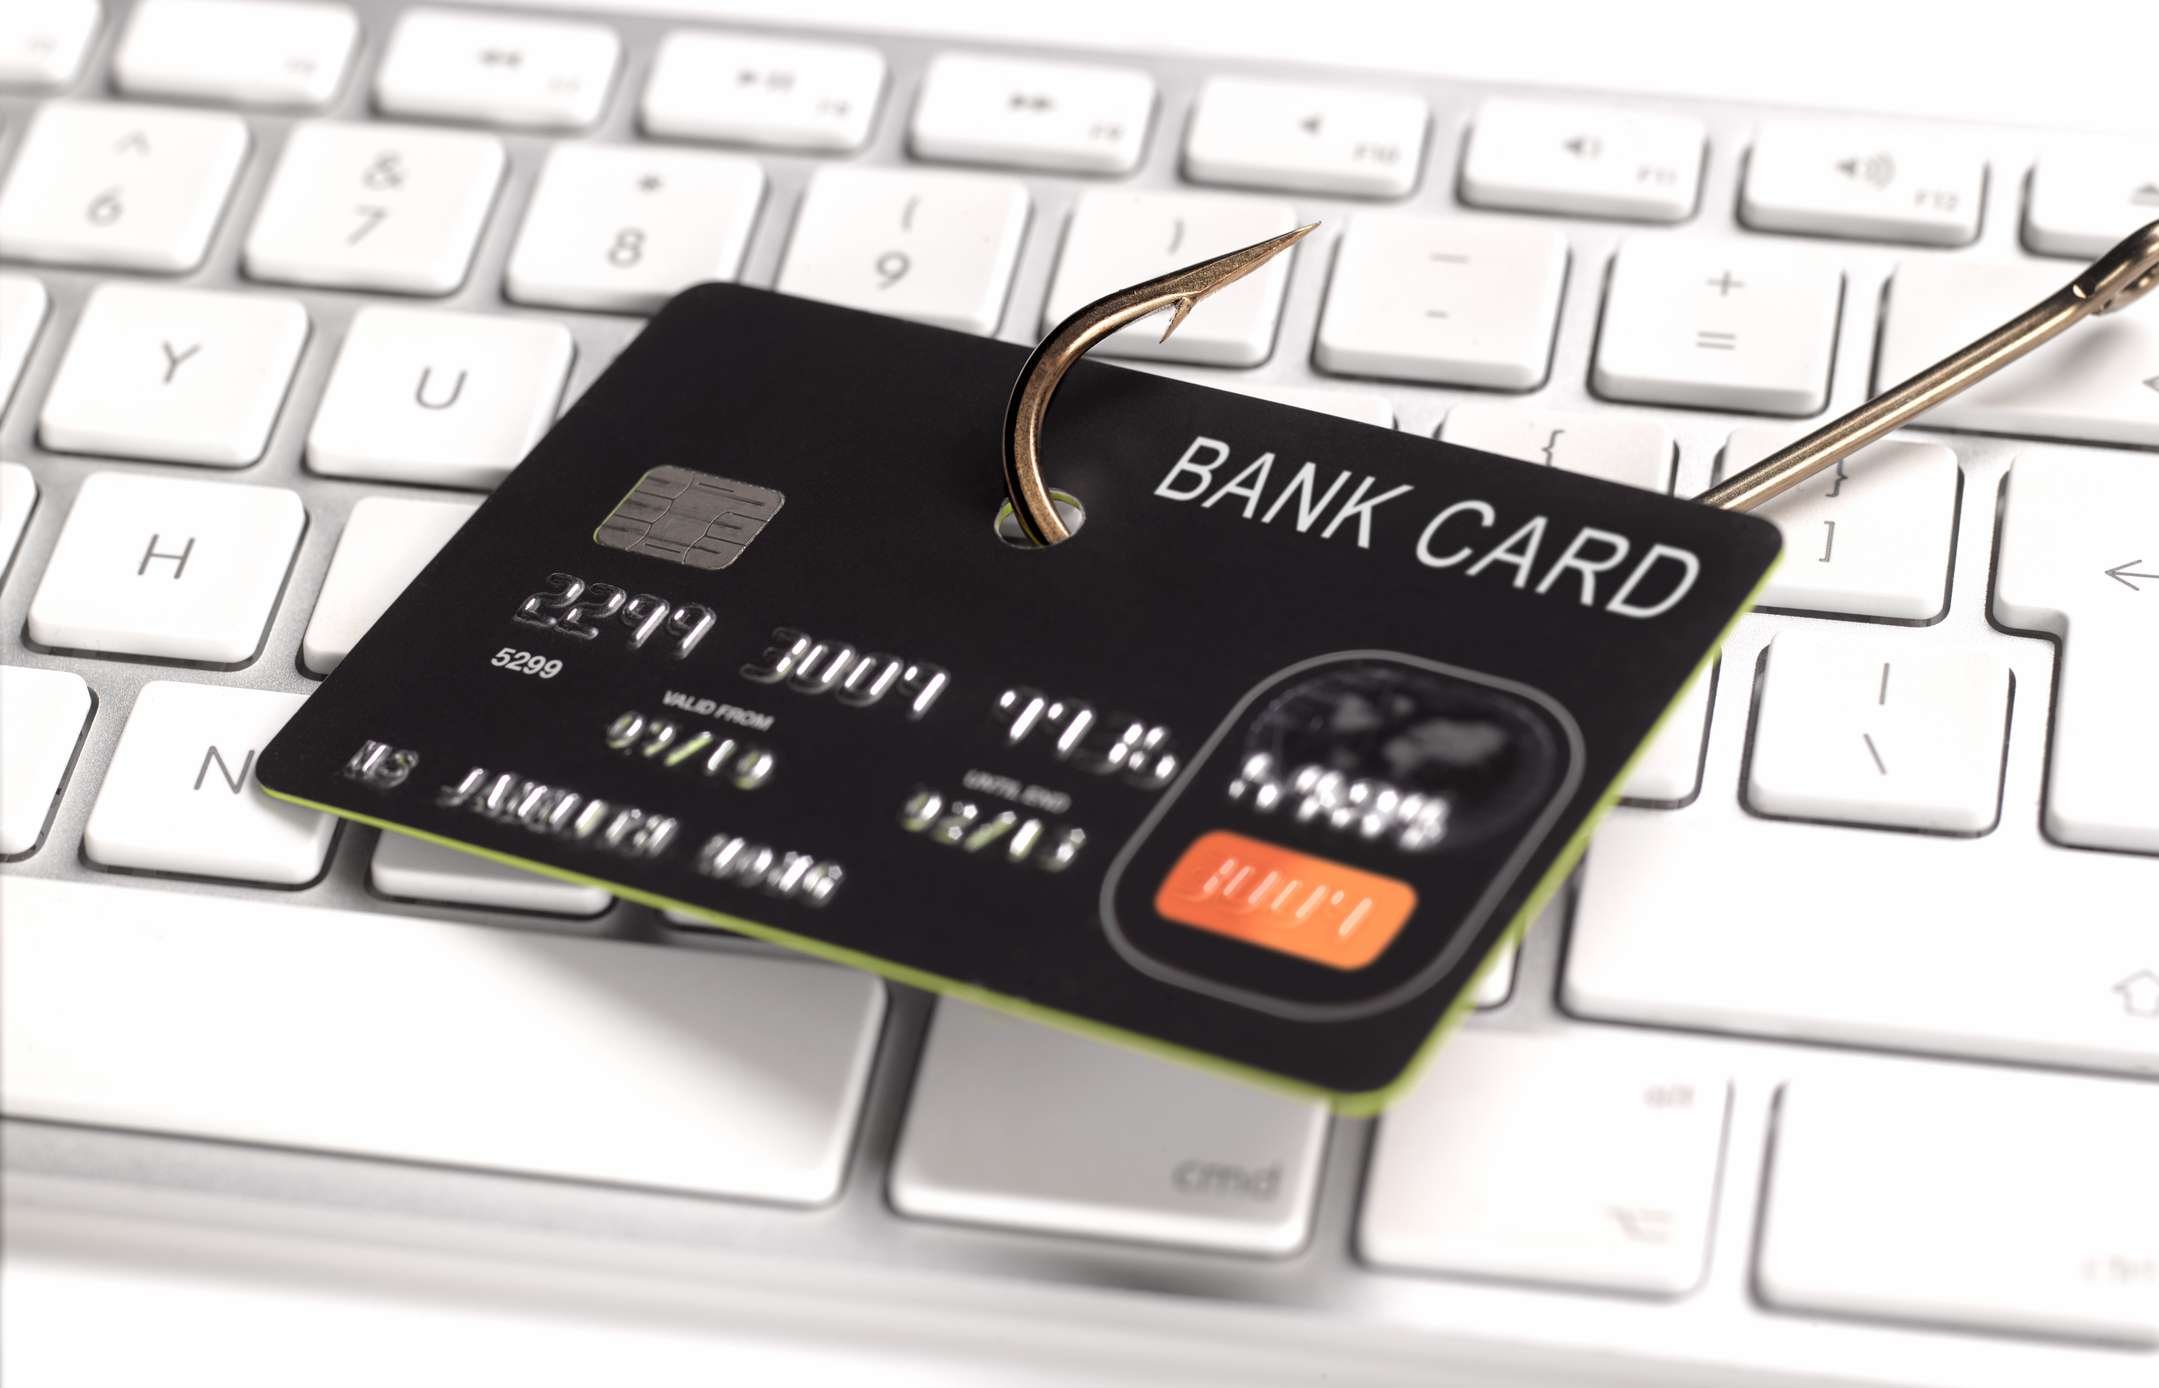 A security concept image of a credit card with a fish hook through it laying on a computer keyboard.